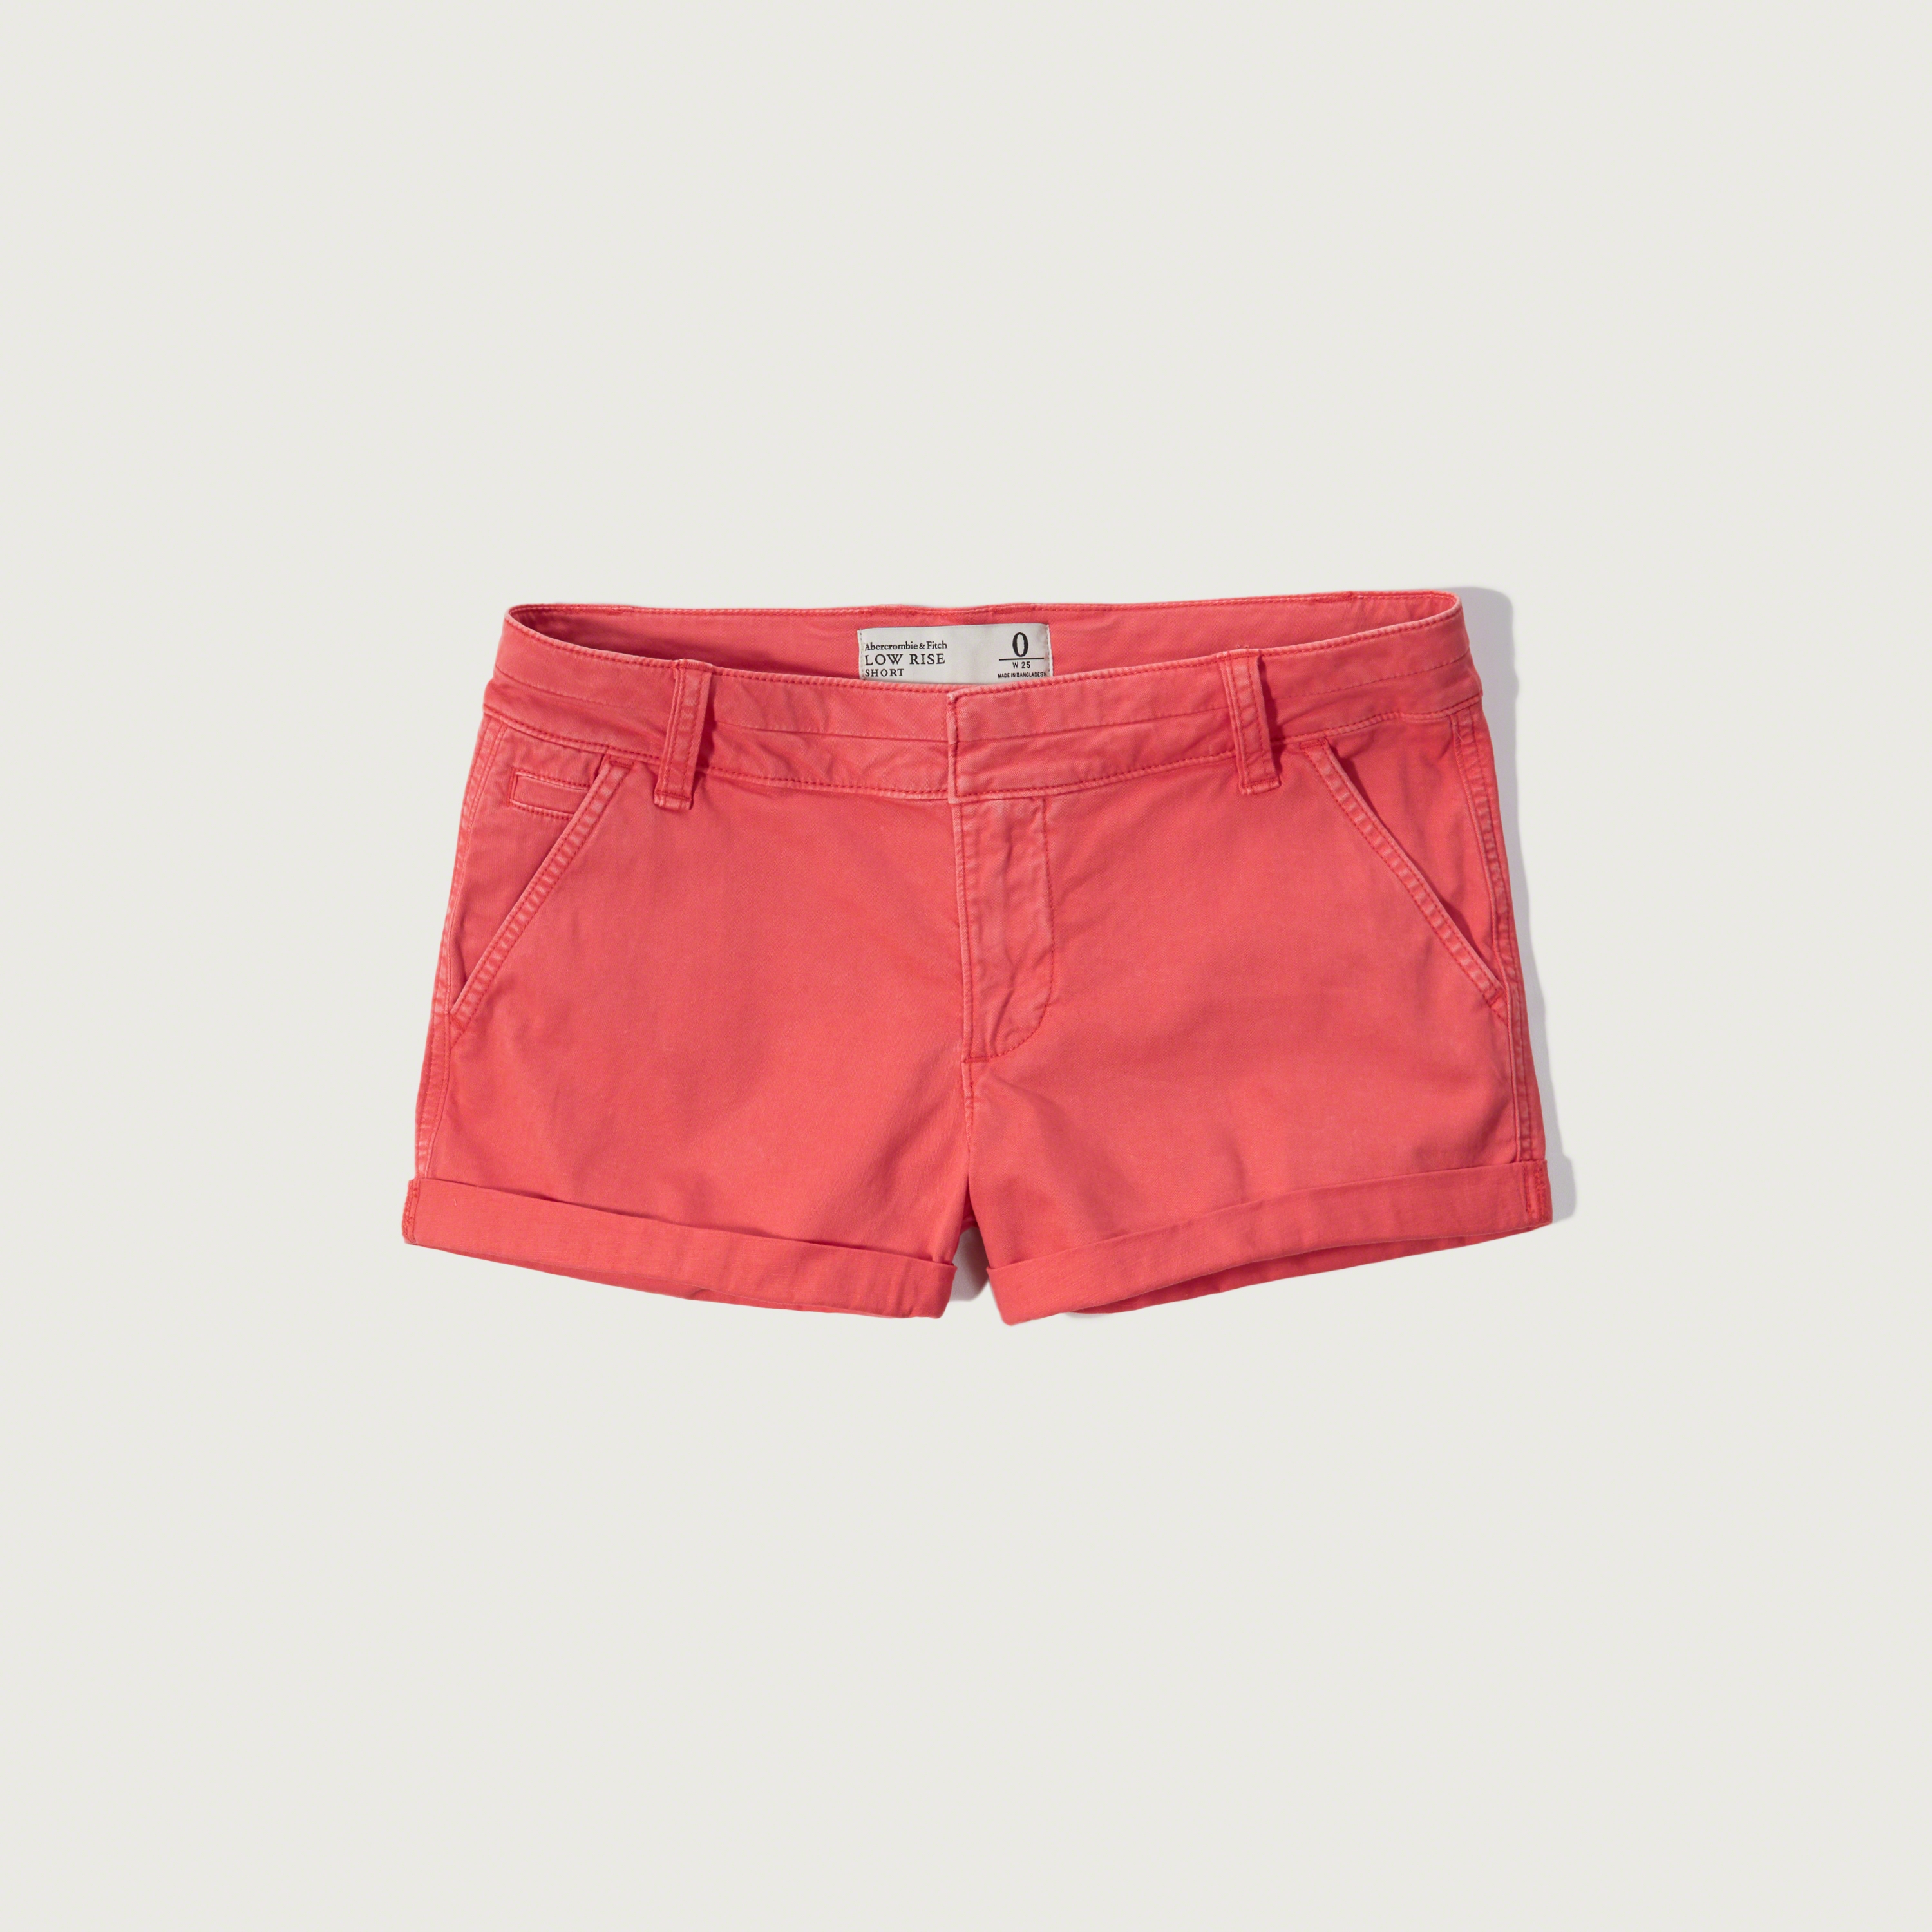 Lyst Abercrombie Amp Fitch Classic Chino Shorts